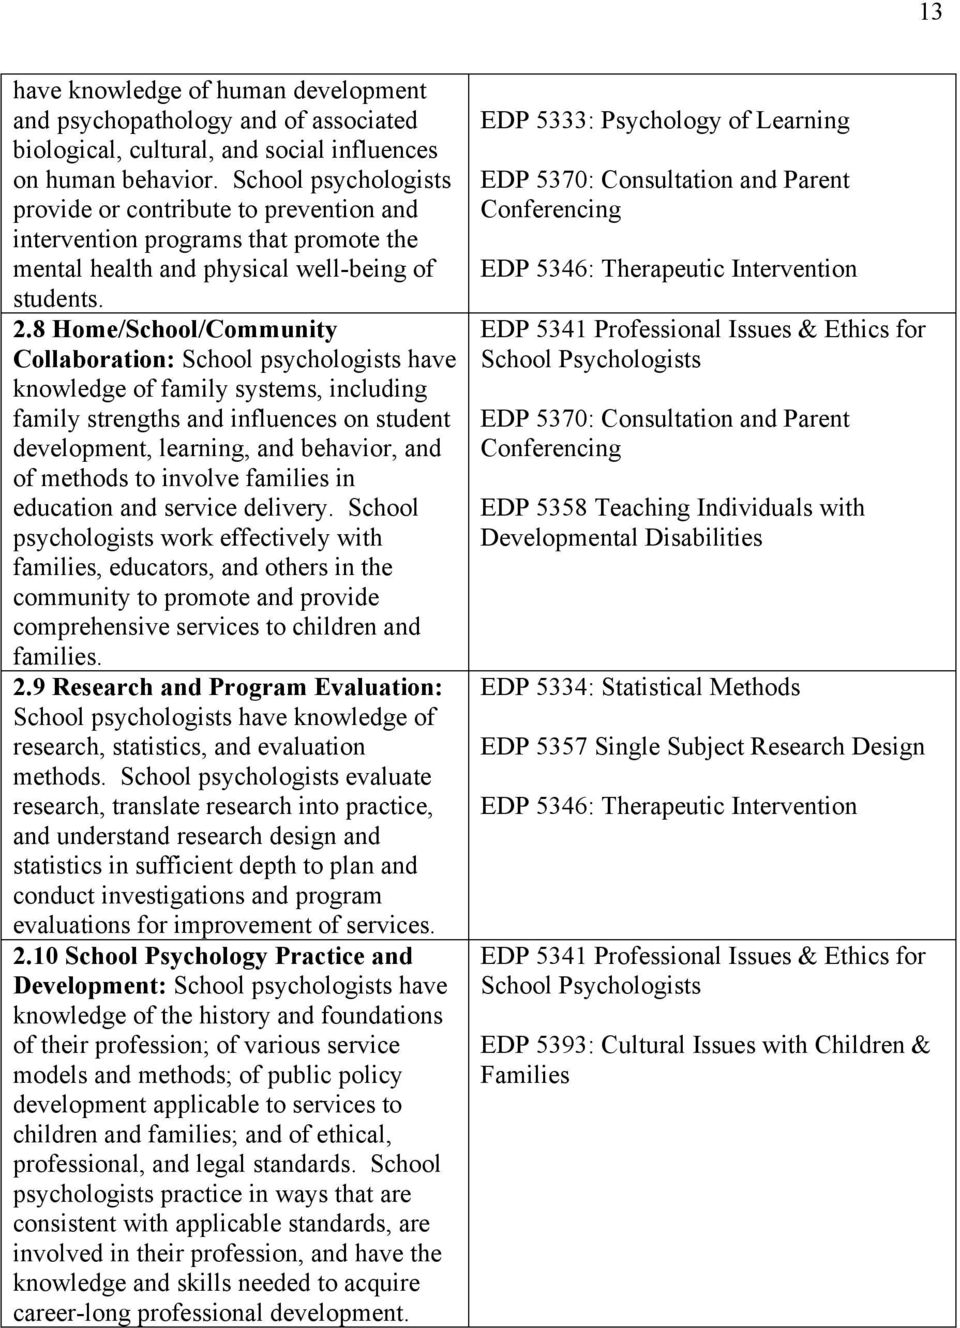 8 Home/School/Community Collaboration: School psychologists have knowledge of family systems, including family strengths and influences on student development, learning, and behavior, and of methods